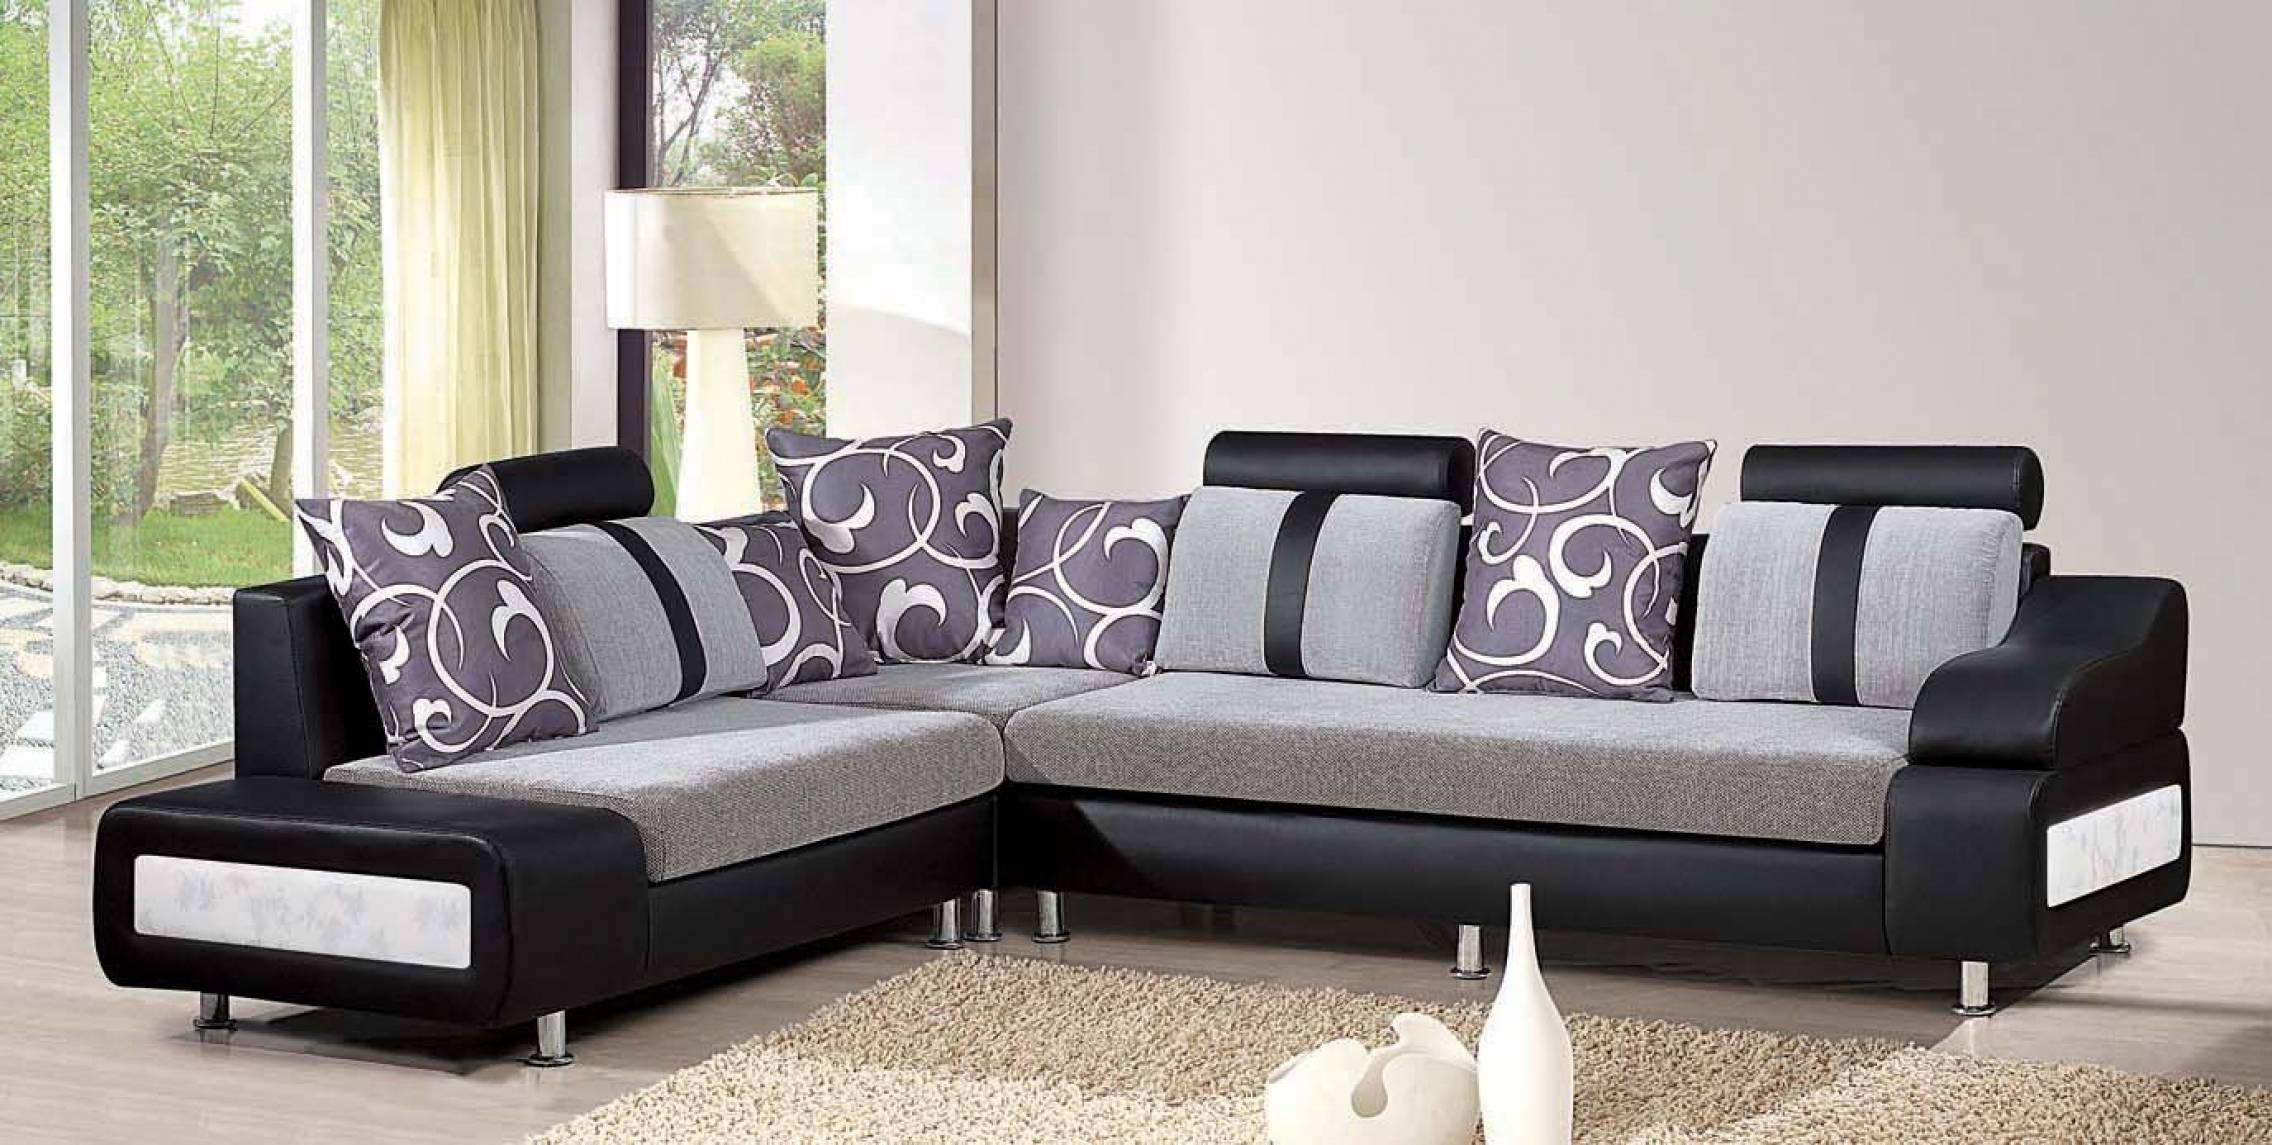 664D31585D6E363D20982Dcc6Ecd90C4 For Elegant Sofa Chair – Home With Casual Sofas And Chairs (View 2 of 15)